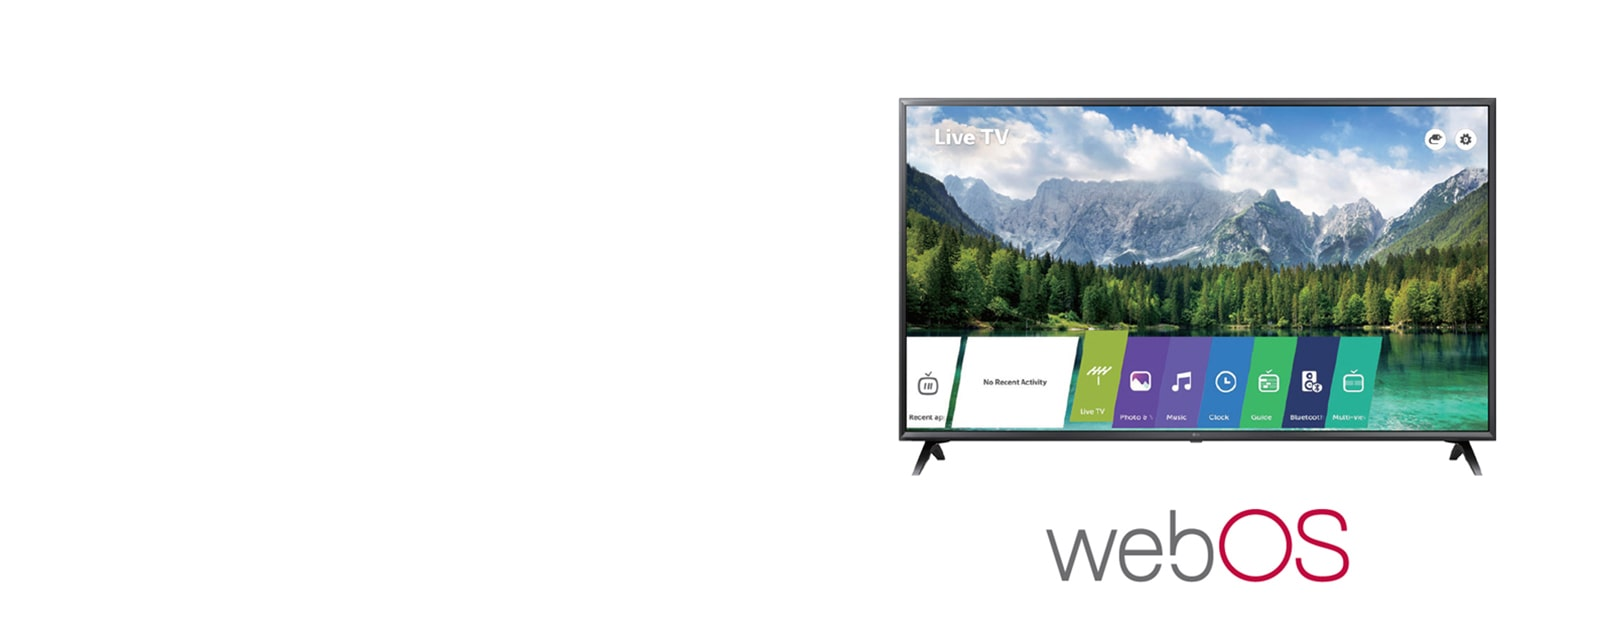 08_Smart-TV-by-LG-WebOS-4_0_1531983991764